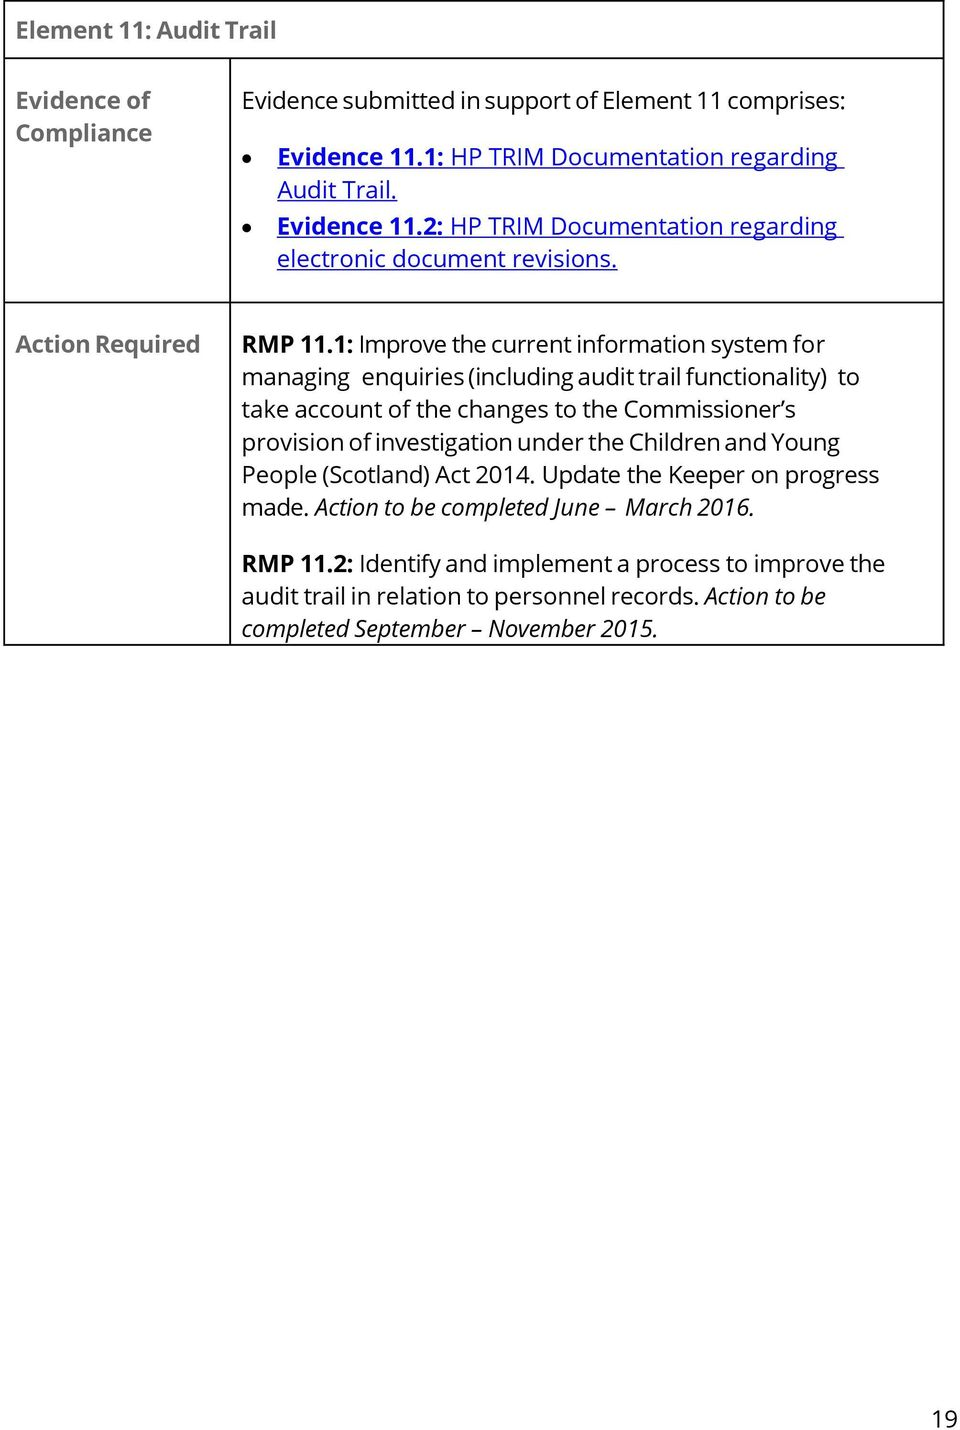 1: Improve the current information system for managing enquiries (including audit trail functionality) to take account of the changes to the Commissioner s provision of investigation